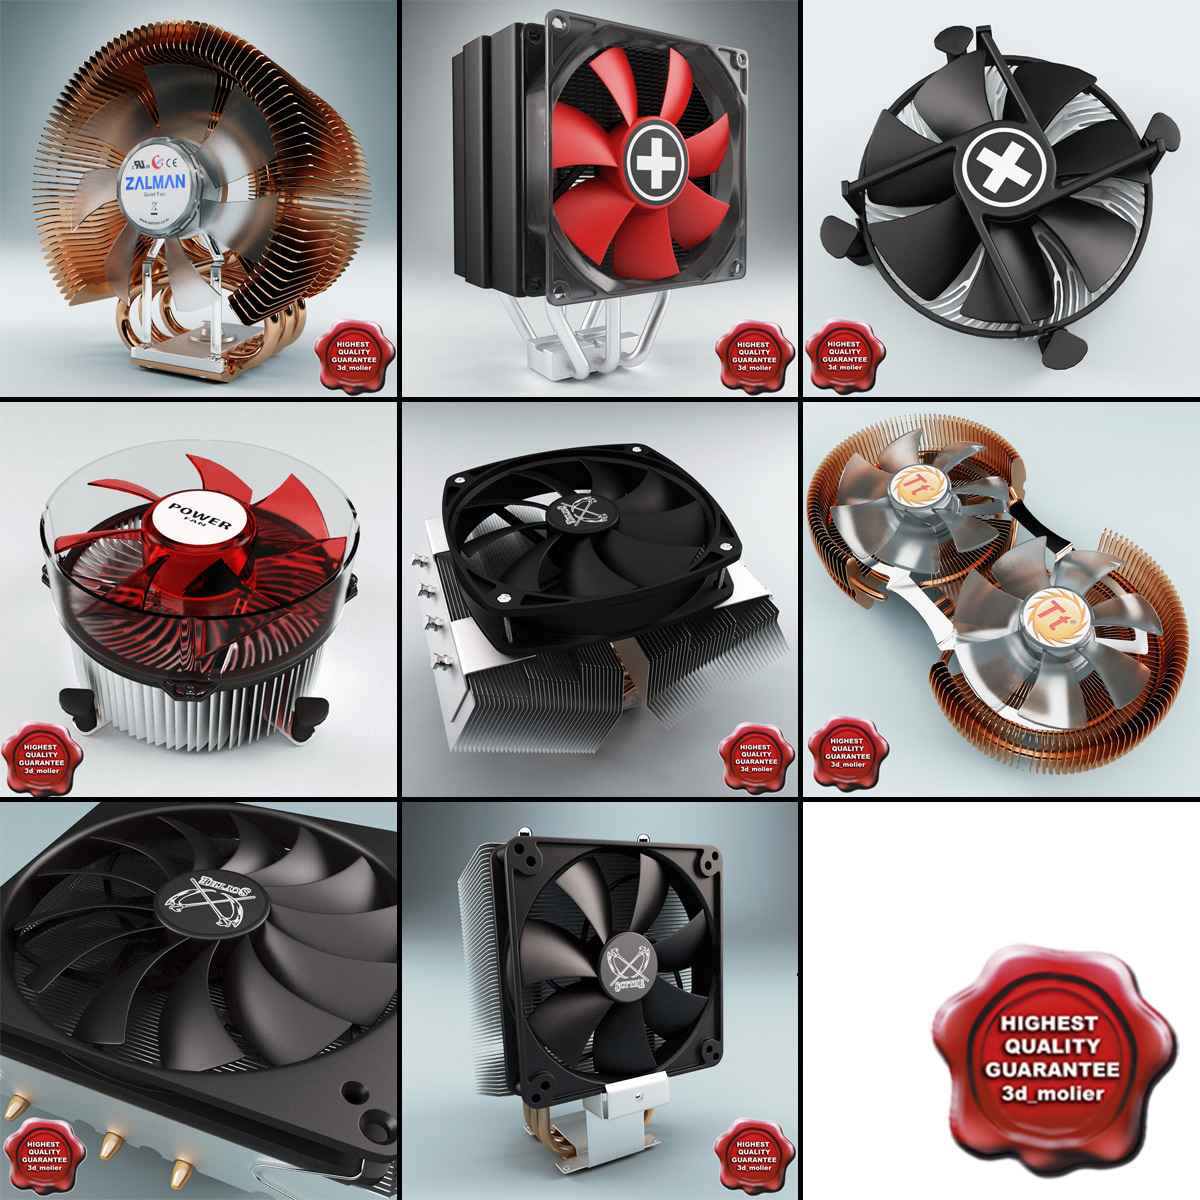 CPU_Coolers_Collection_V3_00.jpg